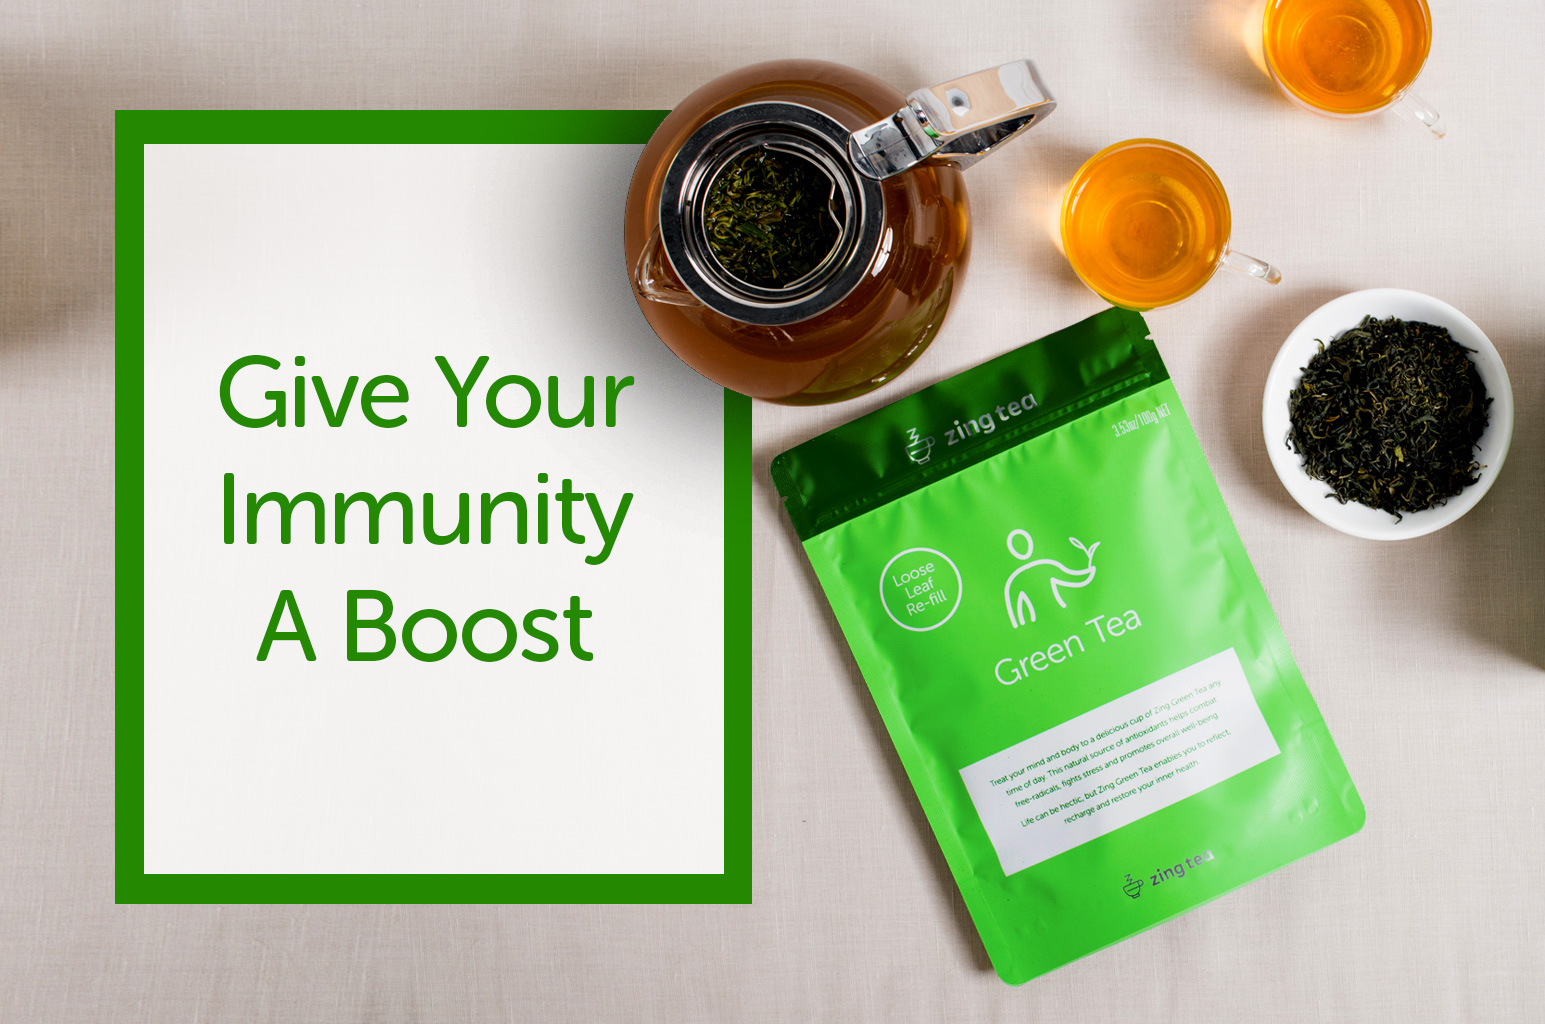 Give Your Immunity A Boost With Zing Tea